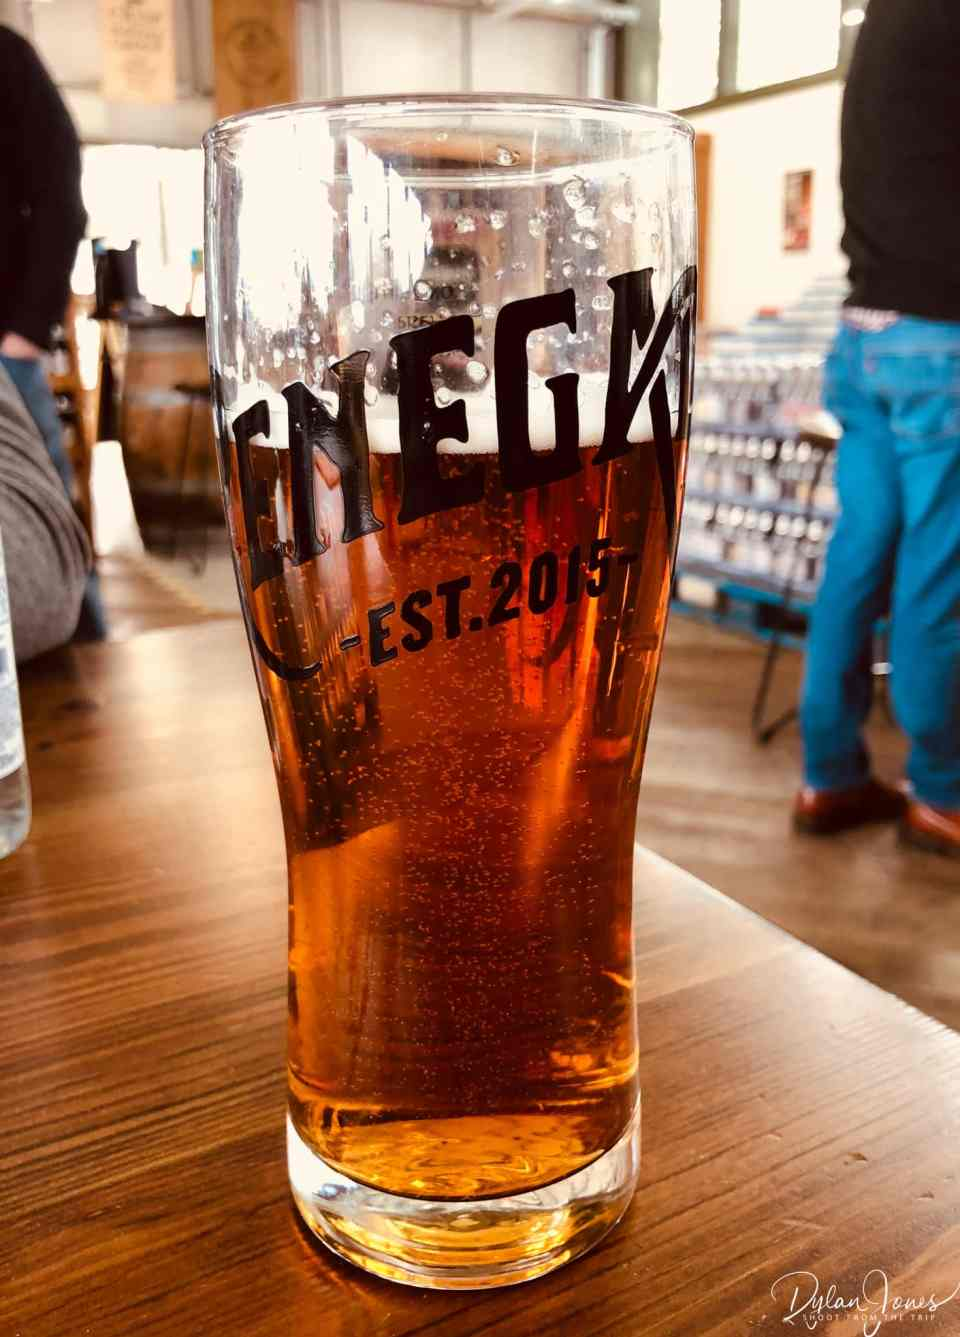 Vienna Lager from the Renegade range at West Berkshire Brewery